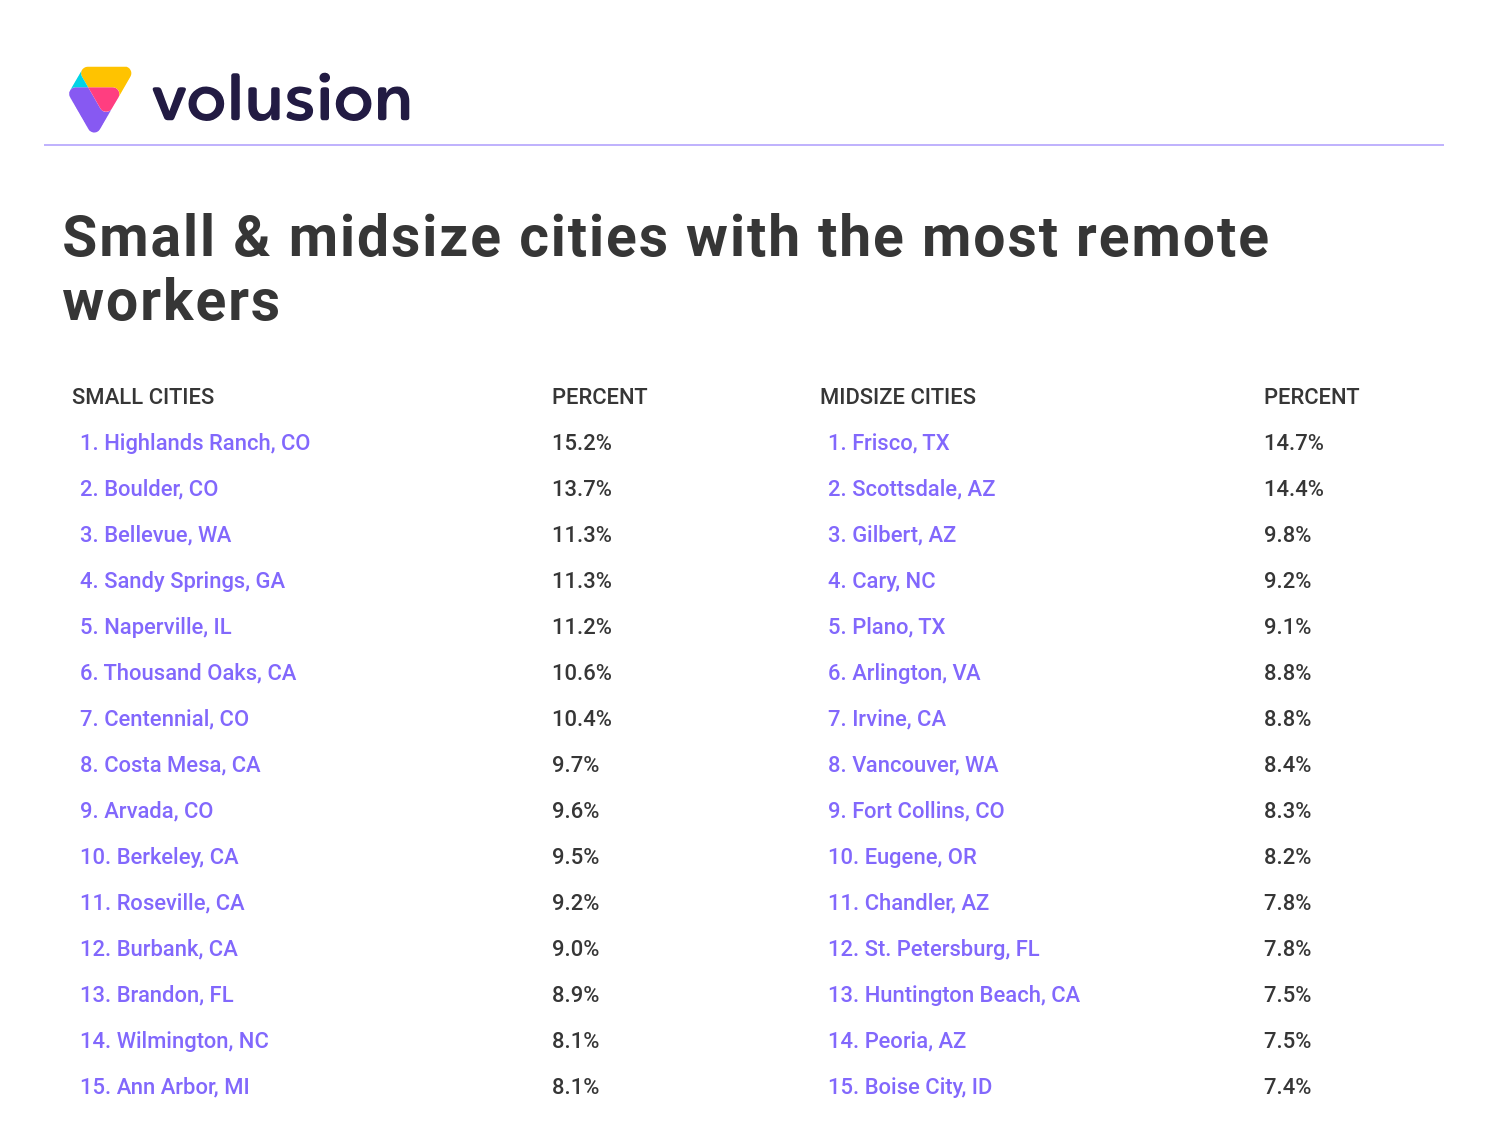 List showing small and midsize U.S. cities with the highest percentages of remote workers